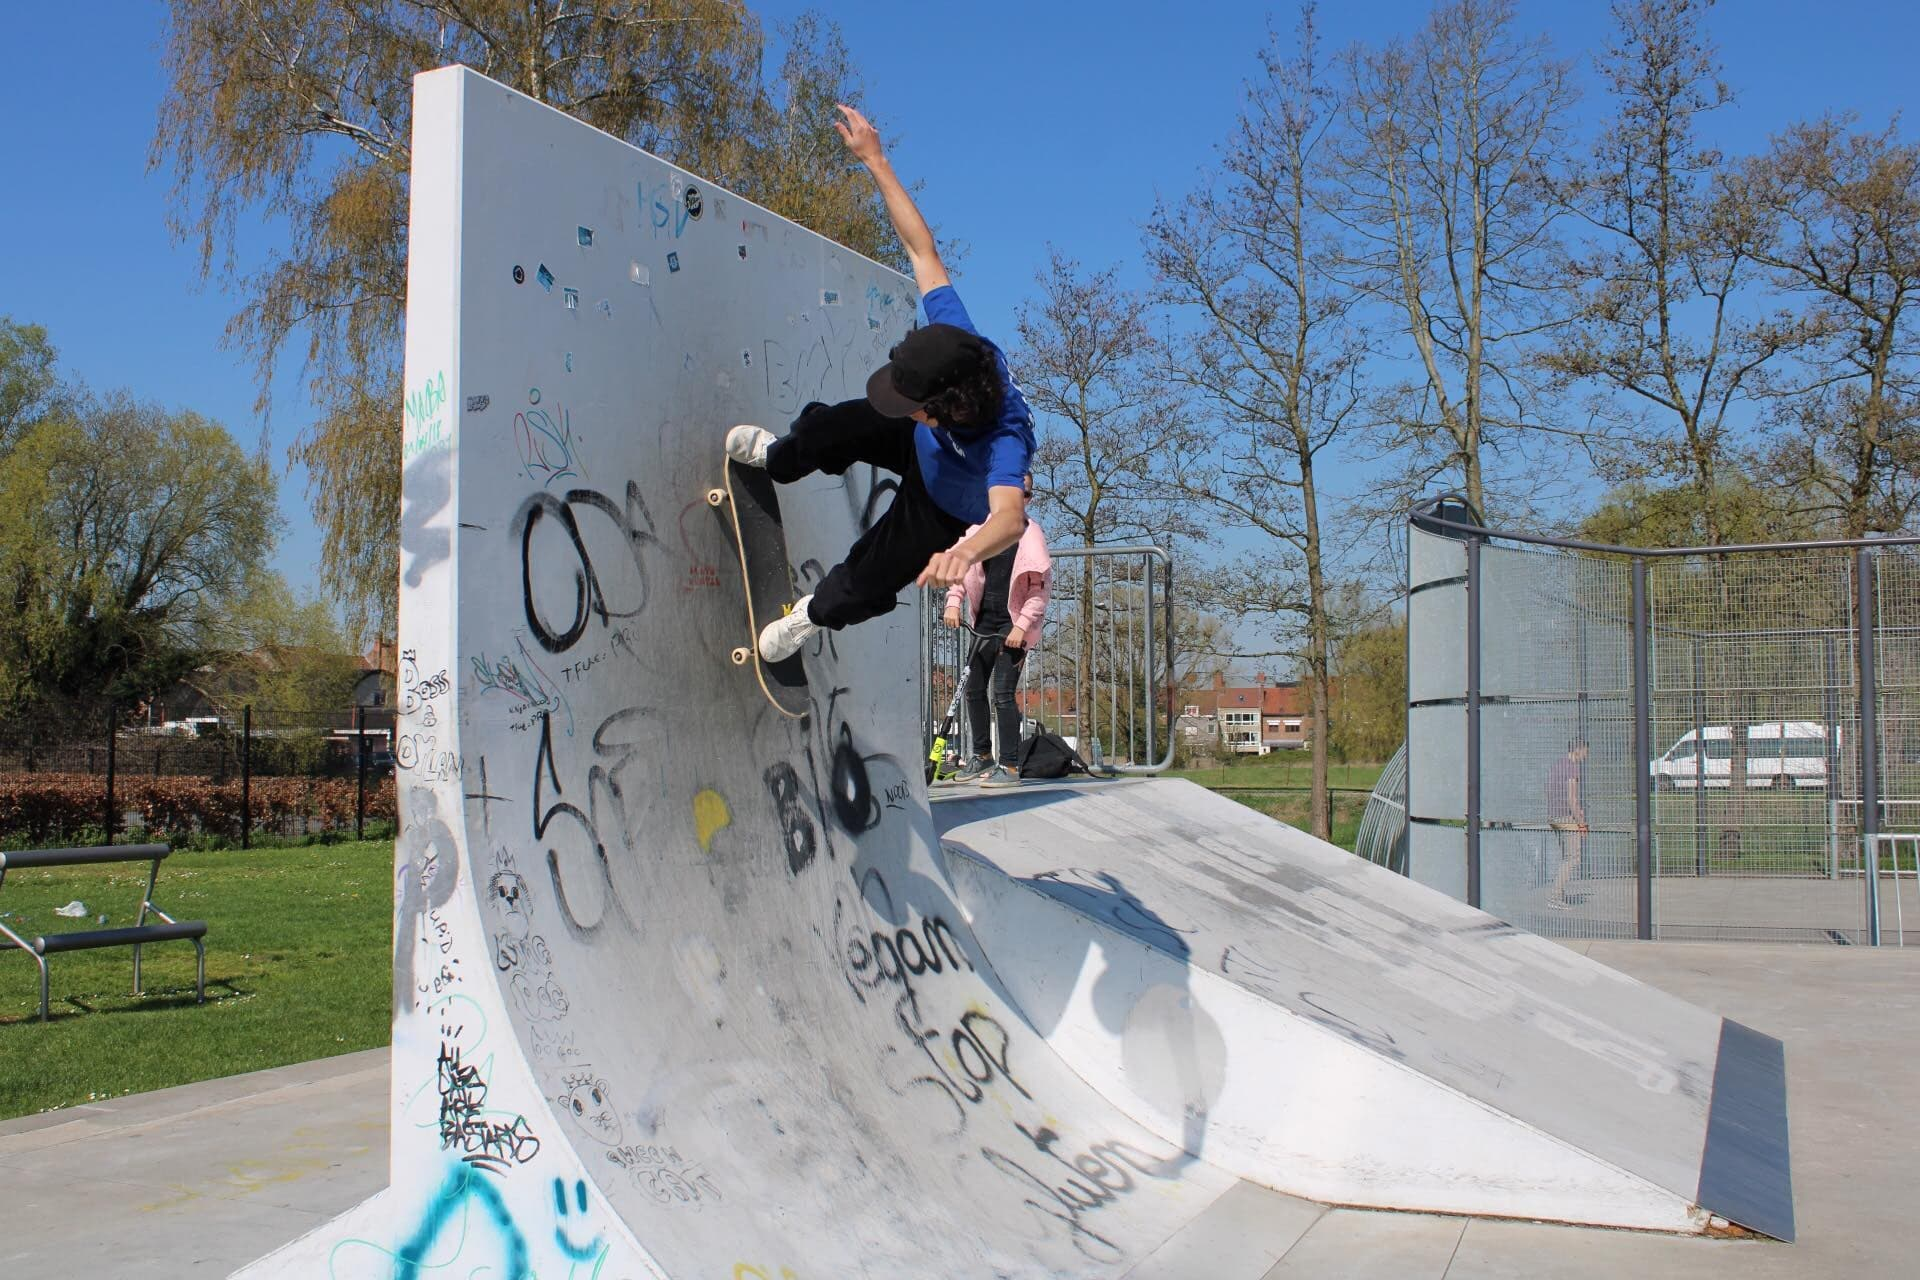 Wallride by Tommy Crabbe at Skatepark Lot. Photo: Stoked